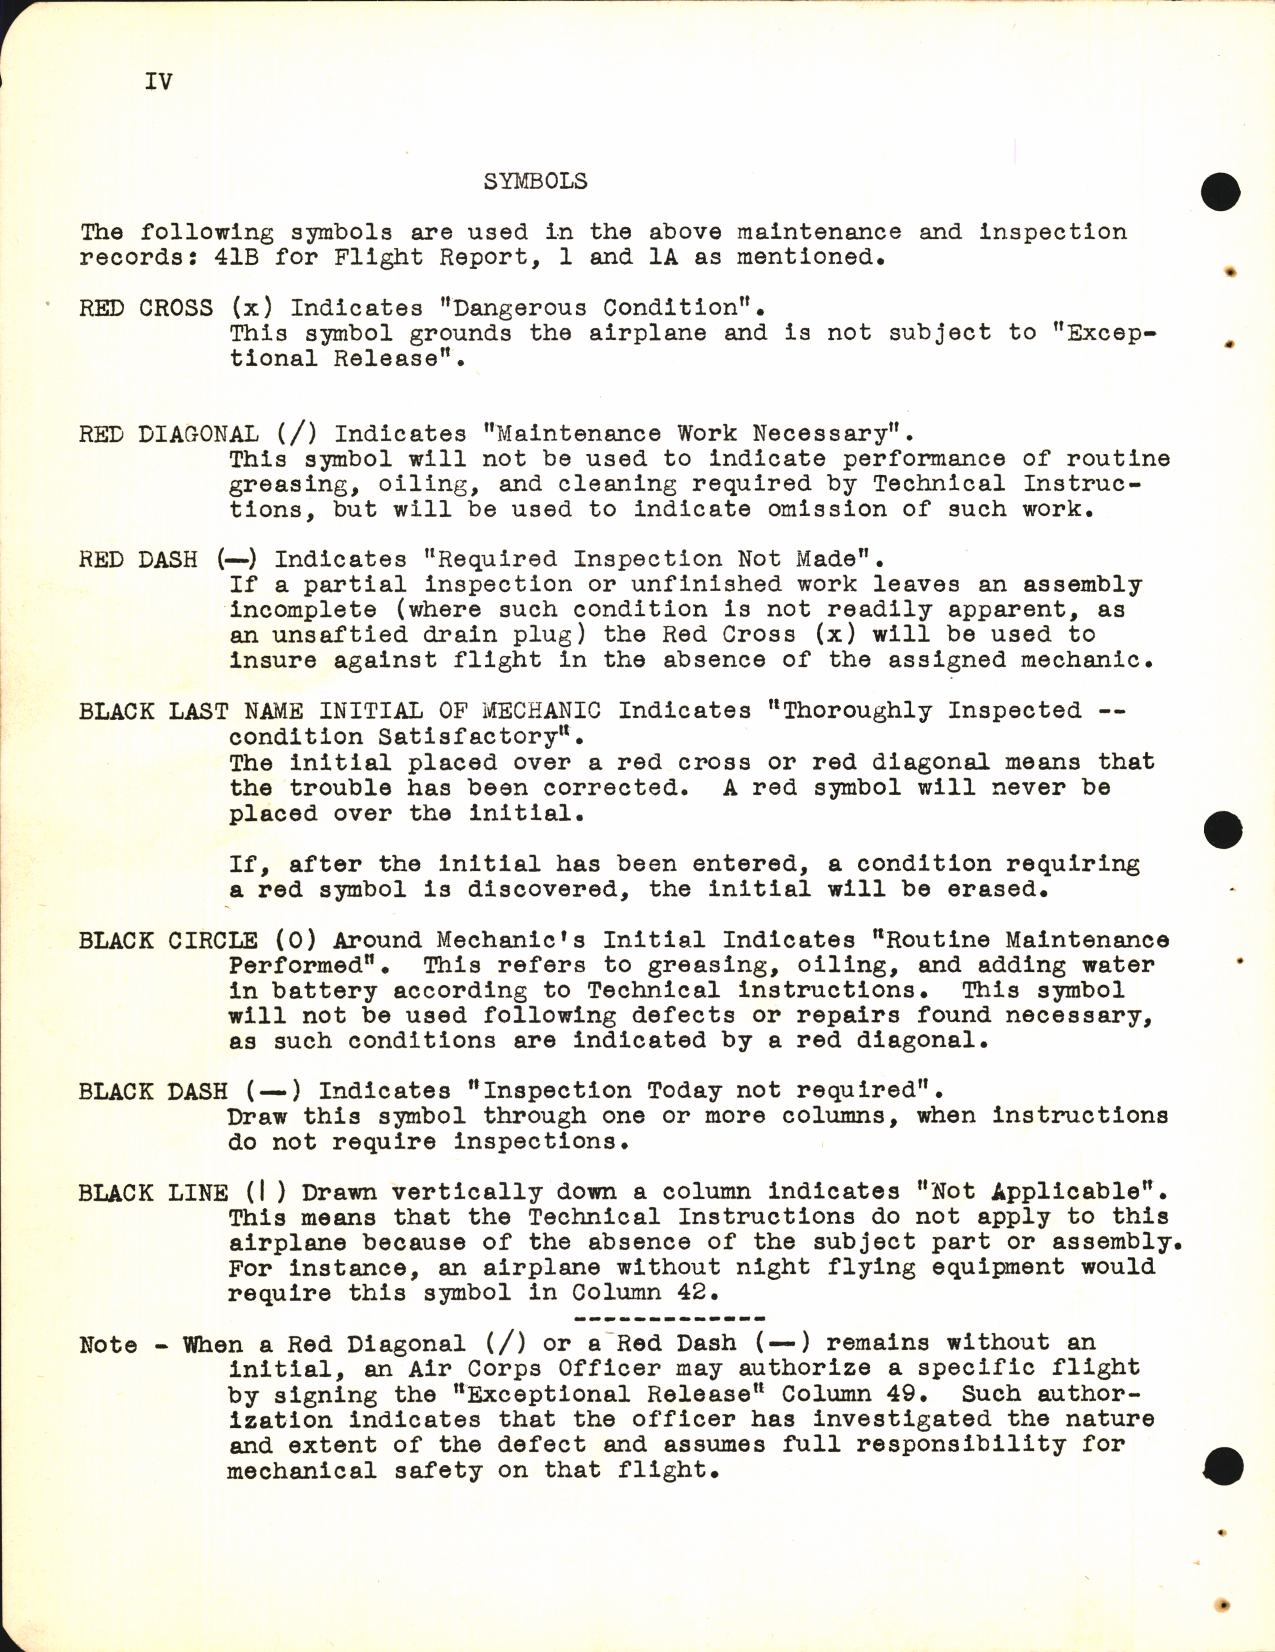 Sample page 4 from AirCorps Library document: Flying Fortress School - Inspections for B-17F Aircraft